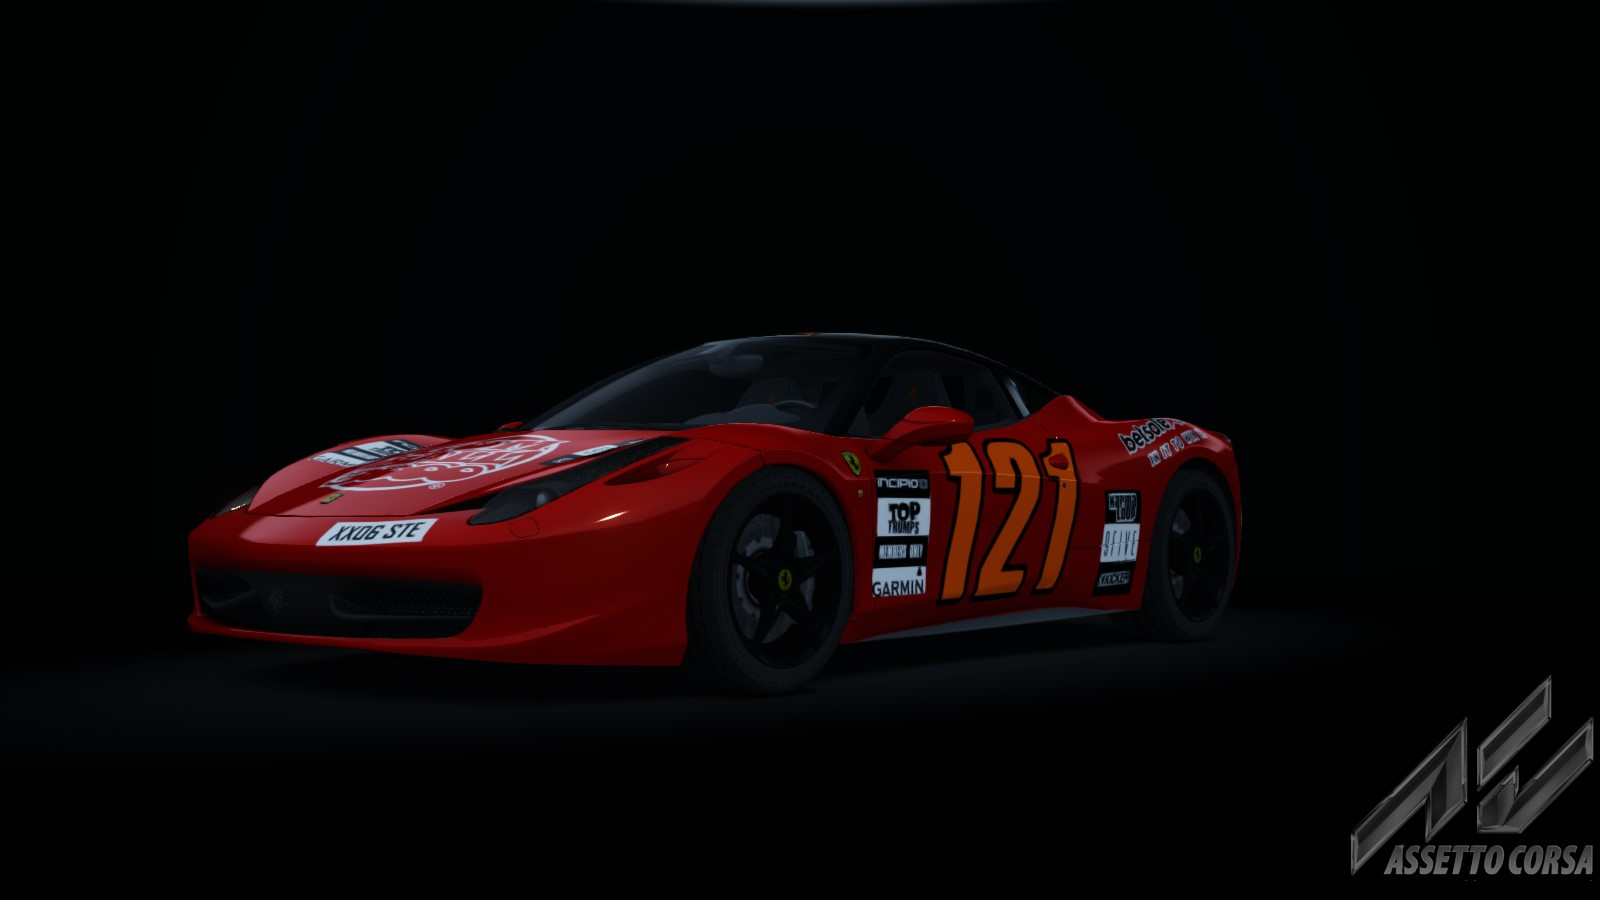 Showroom_ferrari_458_22-8-2015-23-6-57.jpg